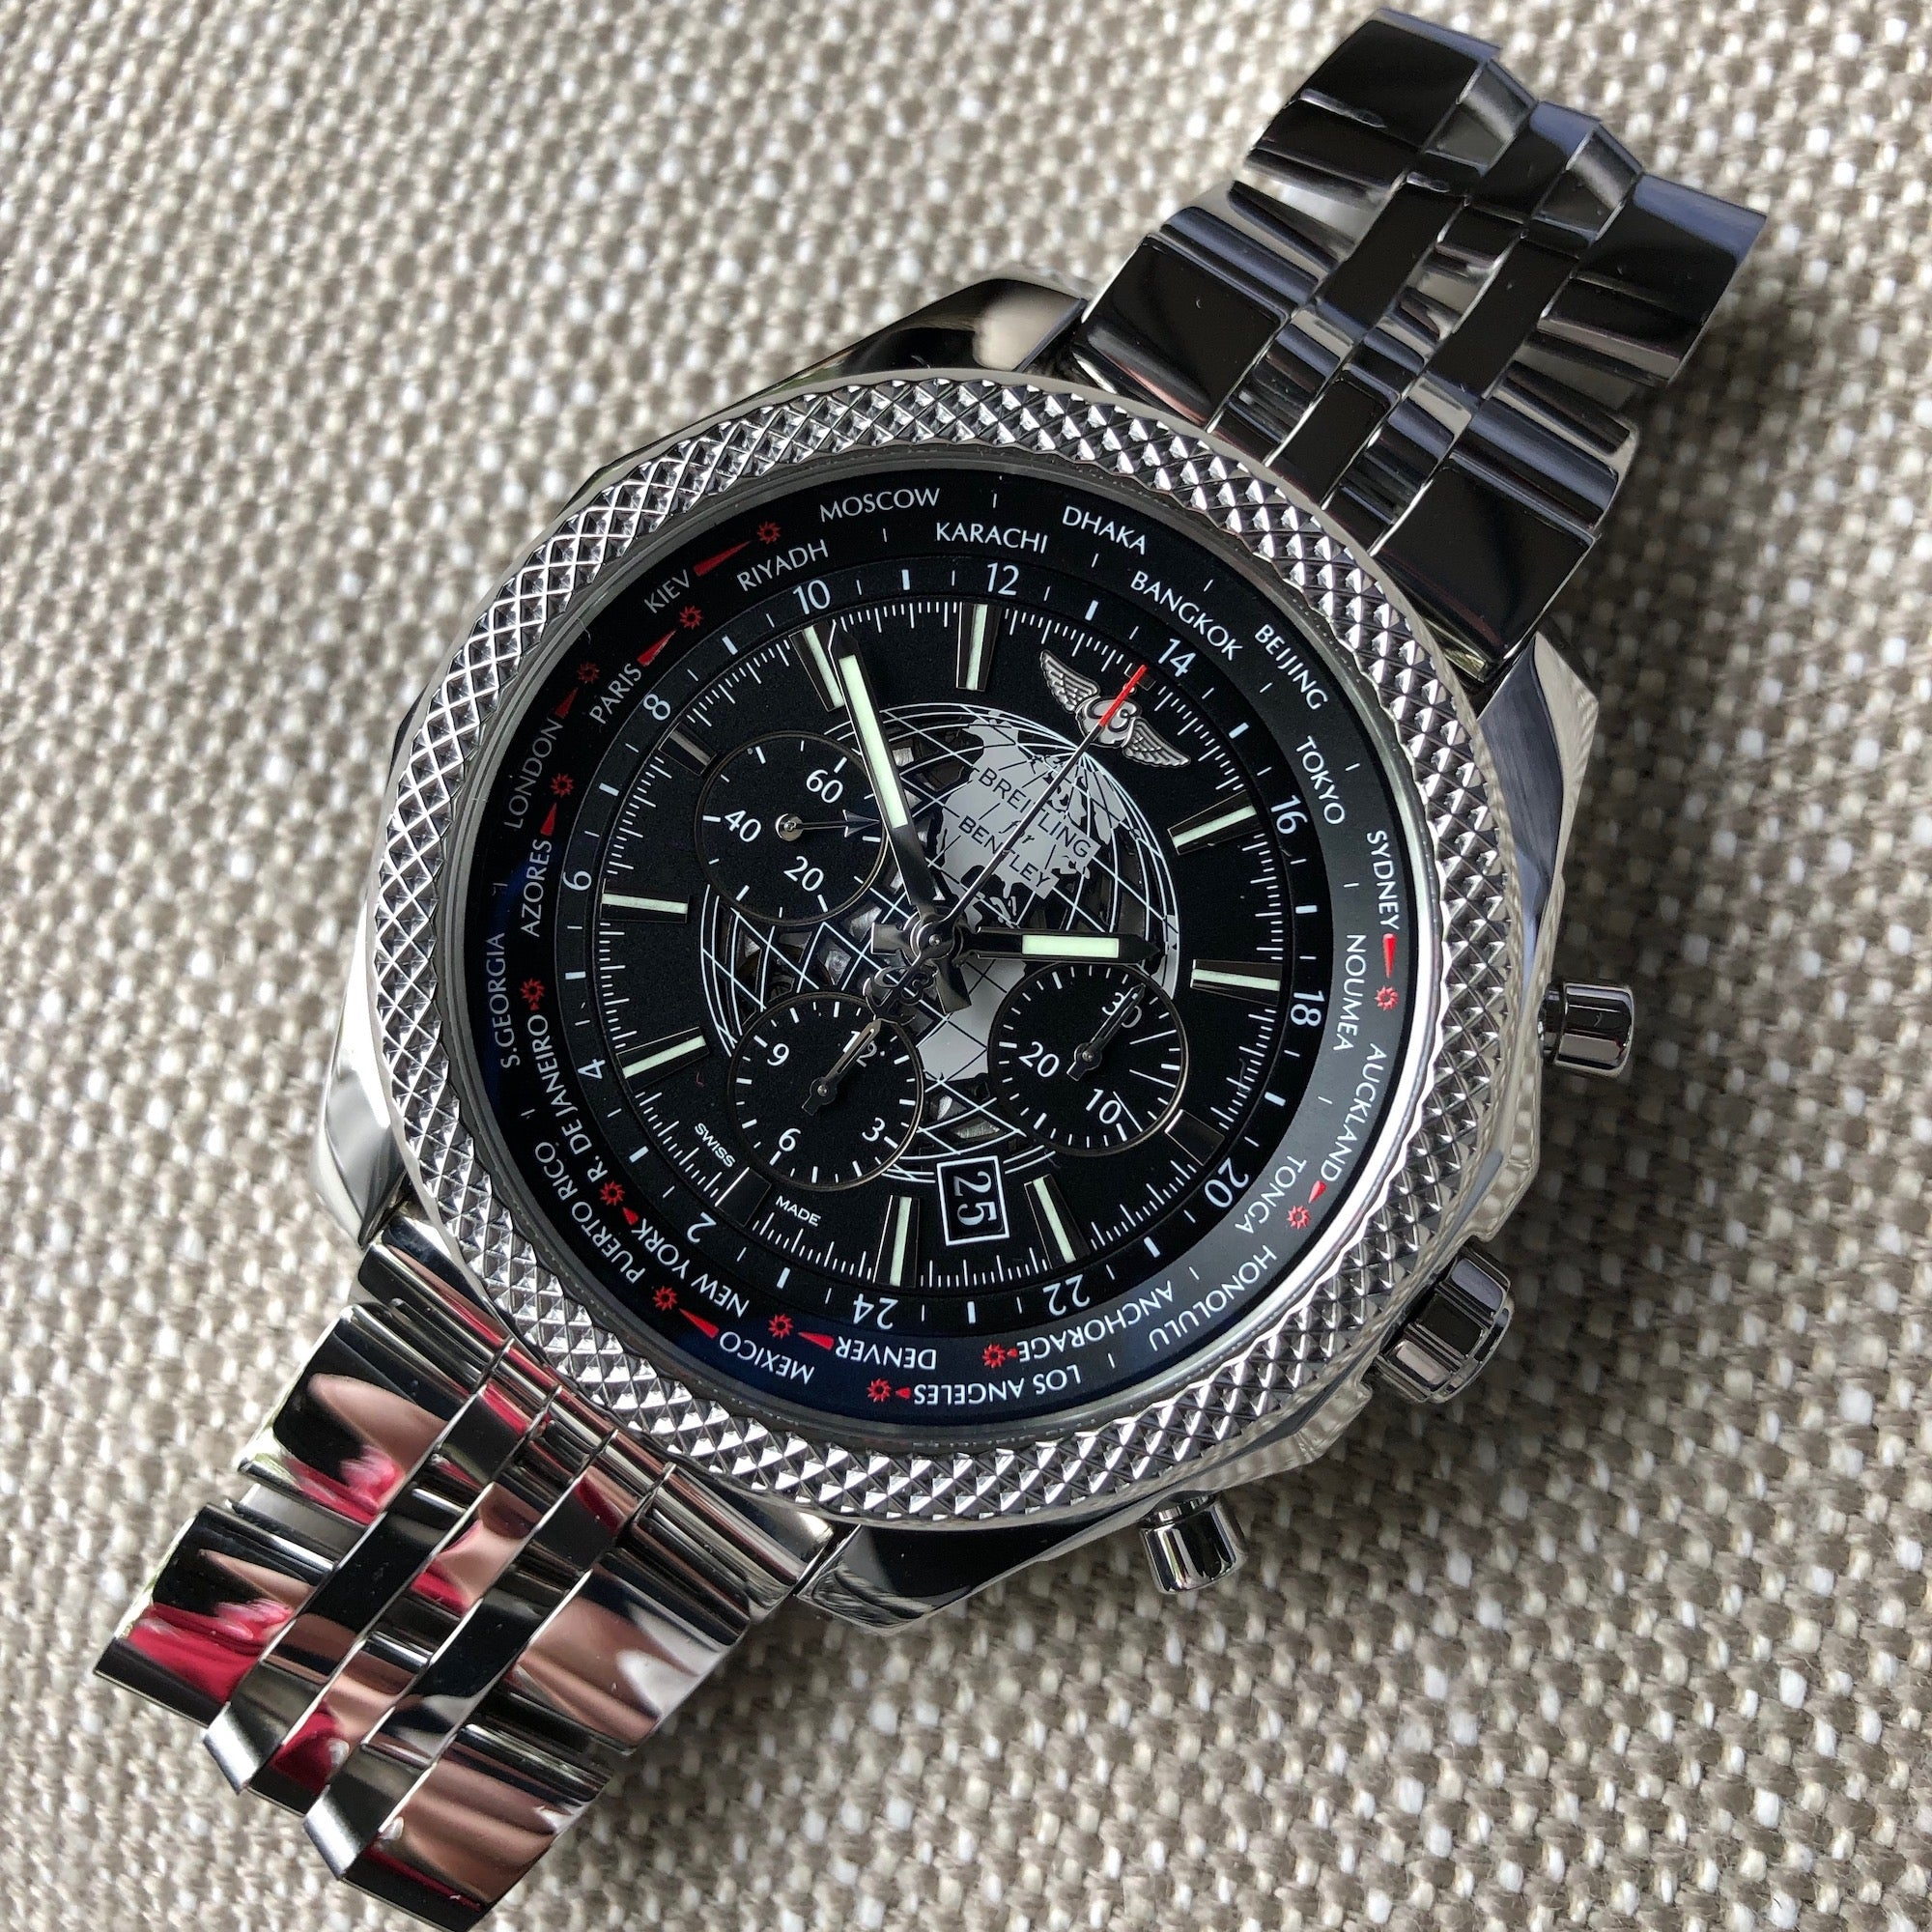 Breitling for Bentley AB0521U4 B05 Unitime Stainless Steel Chronograph 49mm Automatic Wristwatch - Hashtag Watch Company